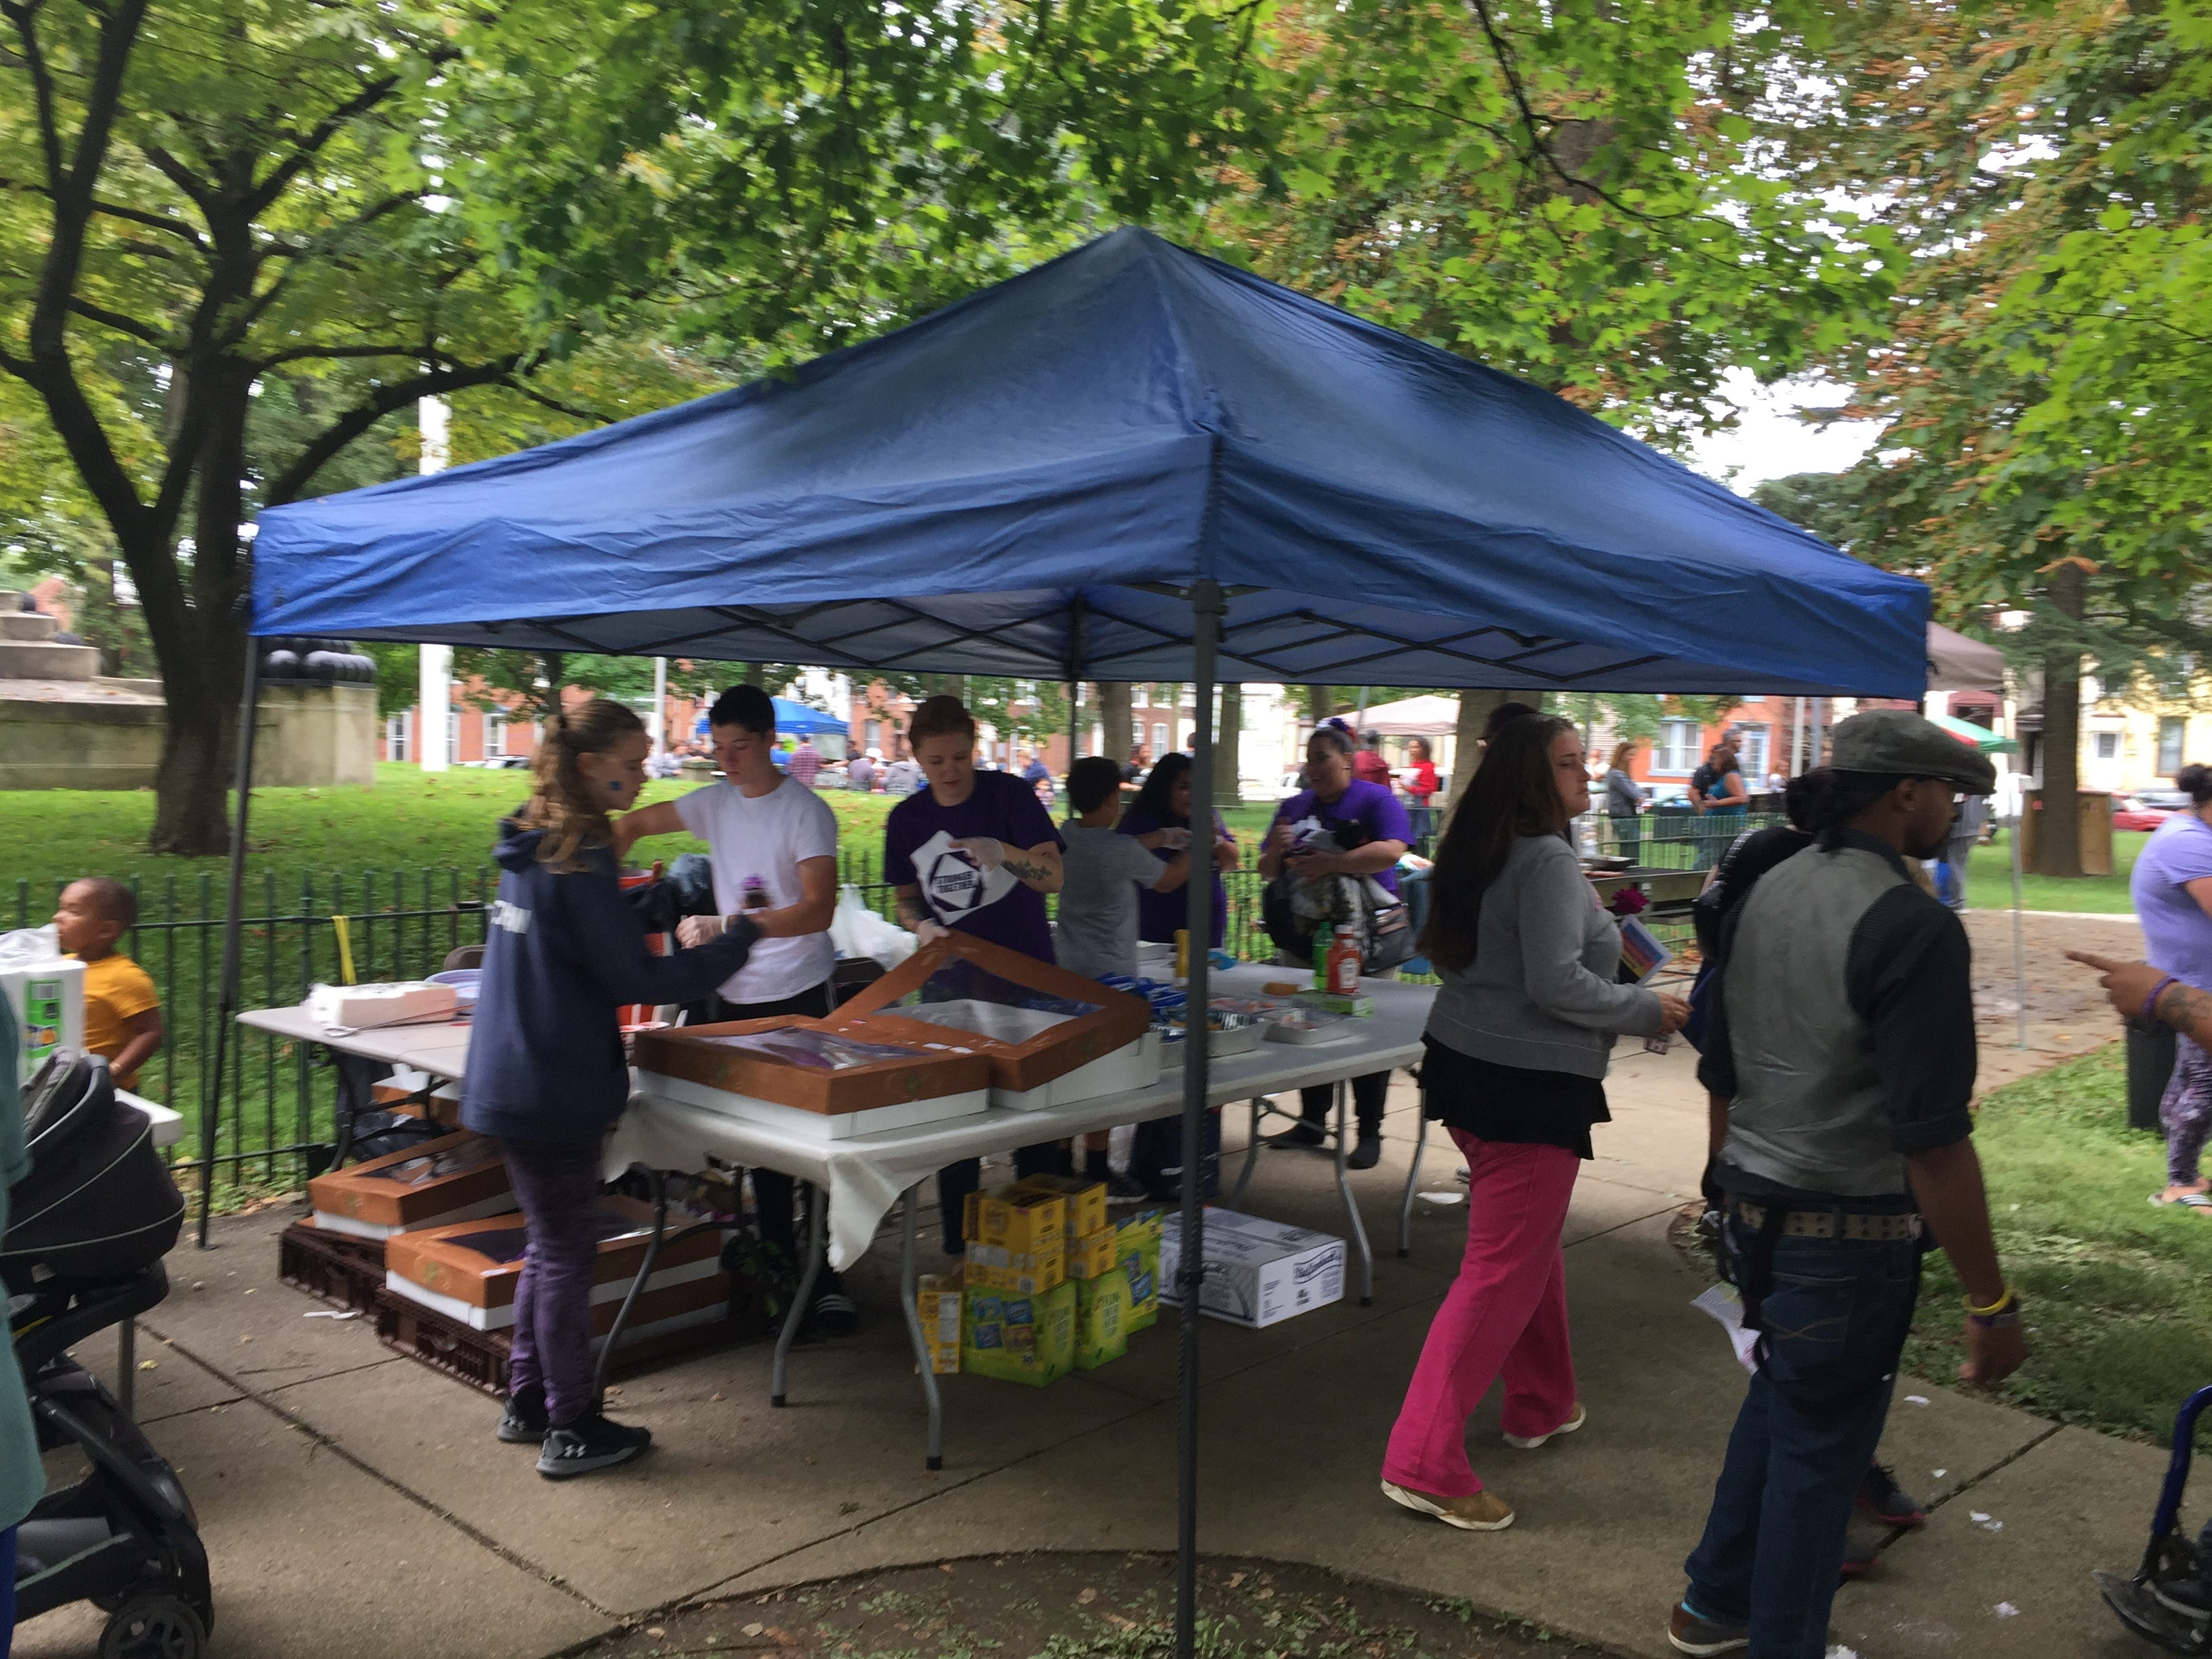 The Lebanon County Heroin Task Force sponsored the first Lebanon County Recovery Day on Saturday, Sept. 8, 2018 at Monument Park in Lebanon. Dozens of substance abuse and mental health treatment providers were on hand to discuss their services.